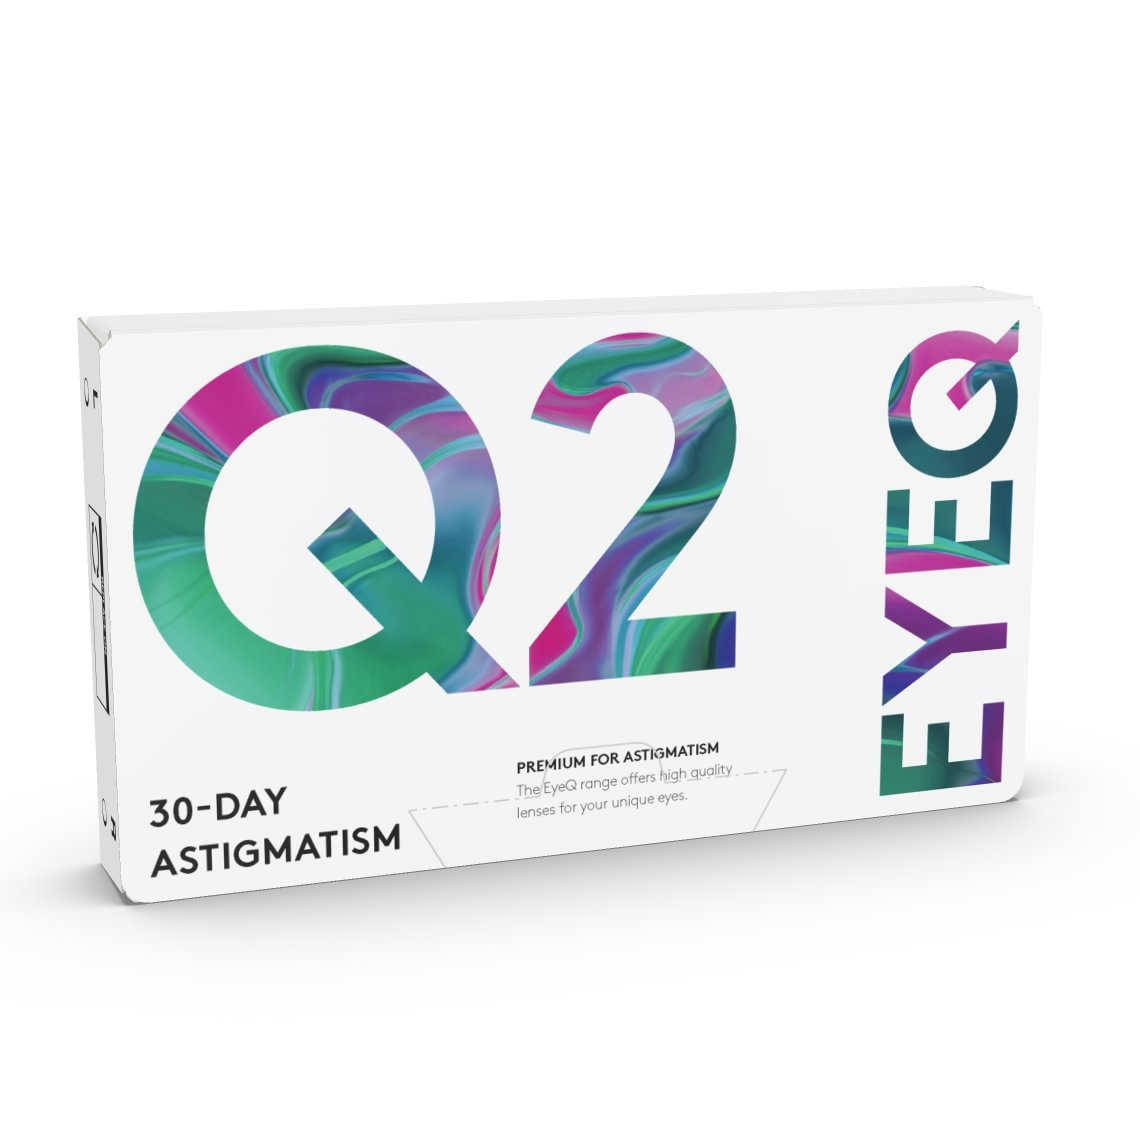 EyeQ Premium For Astigmatism Q2 3 st/box